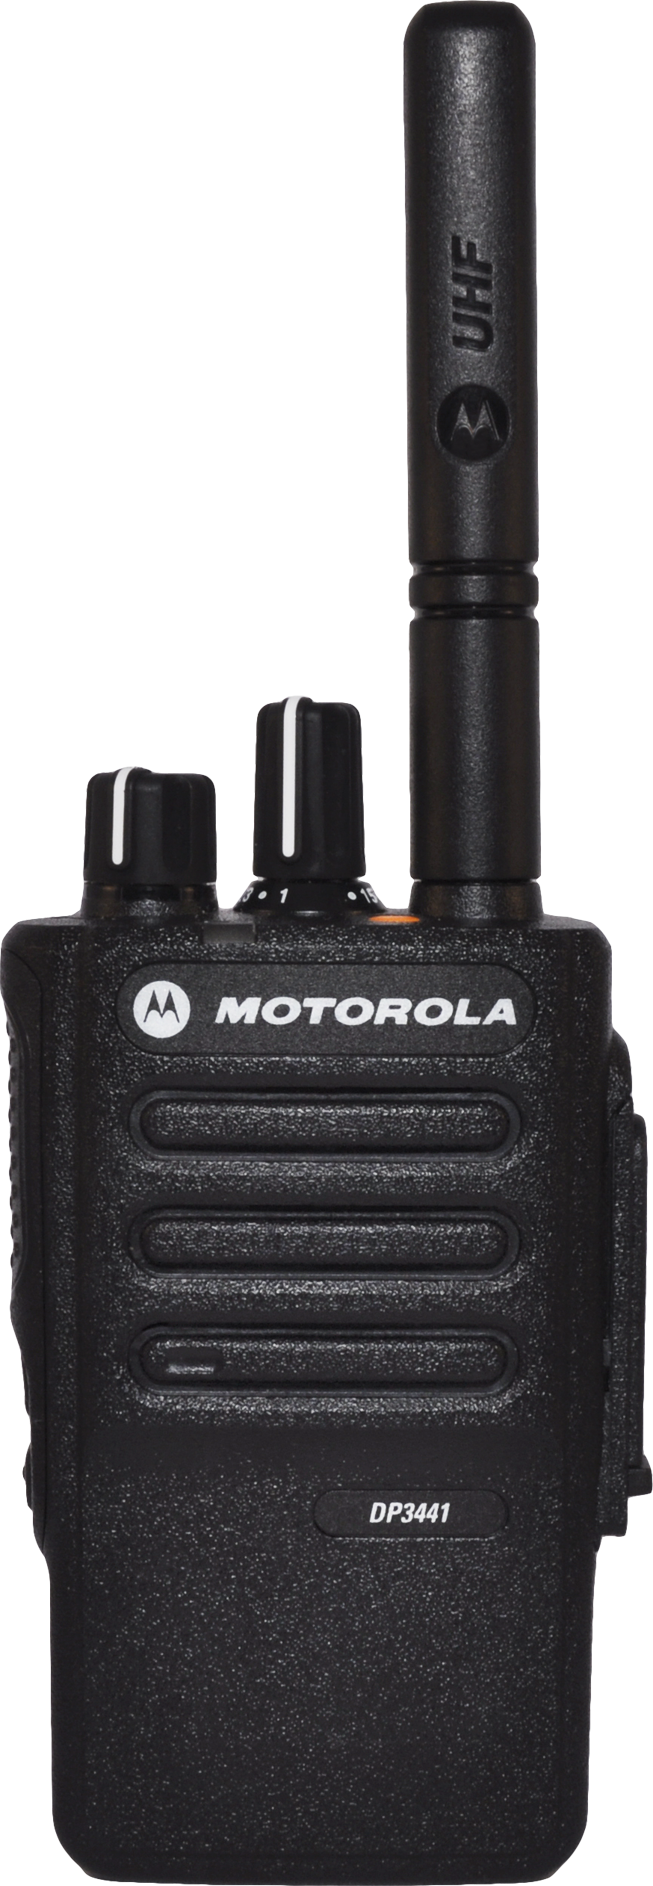 Motorola DP3441e featured image